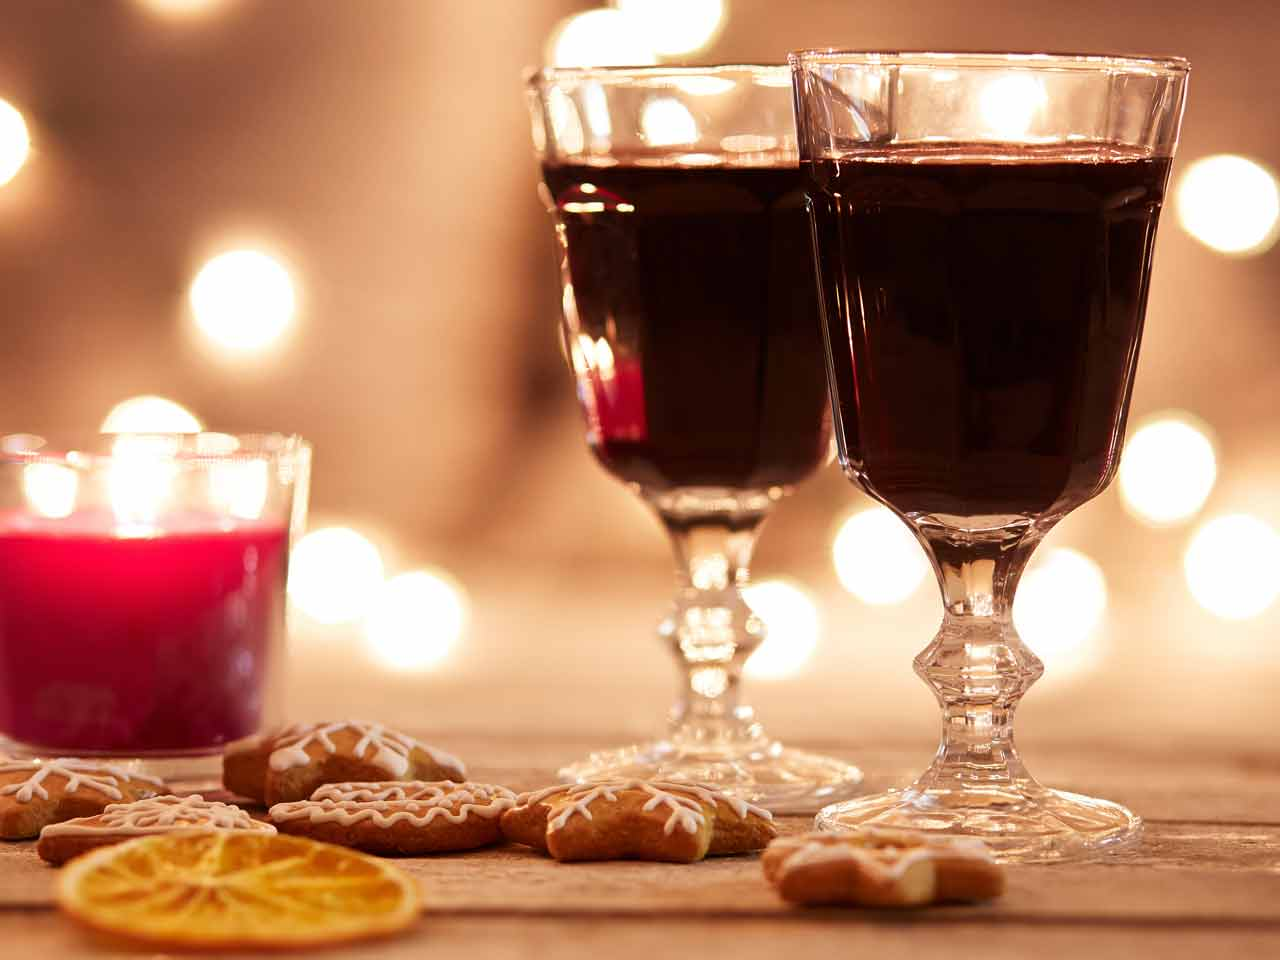 Glogg is a Scandinavian mulled wine with port and brandy